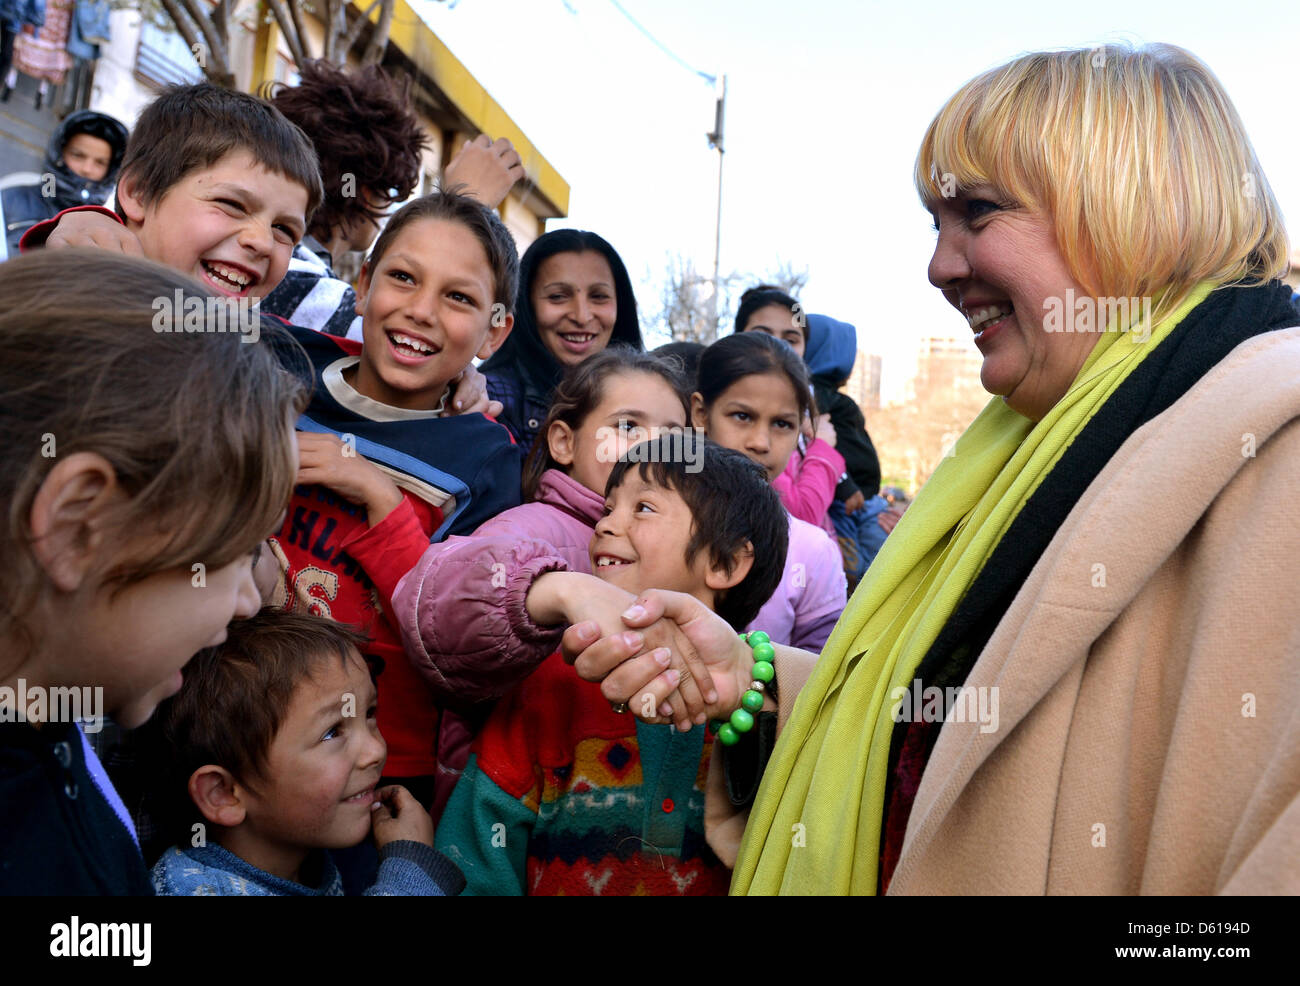 Chairman of the German party The Greens, Claudia Roth, speaks with